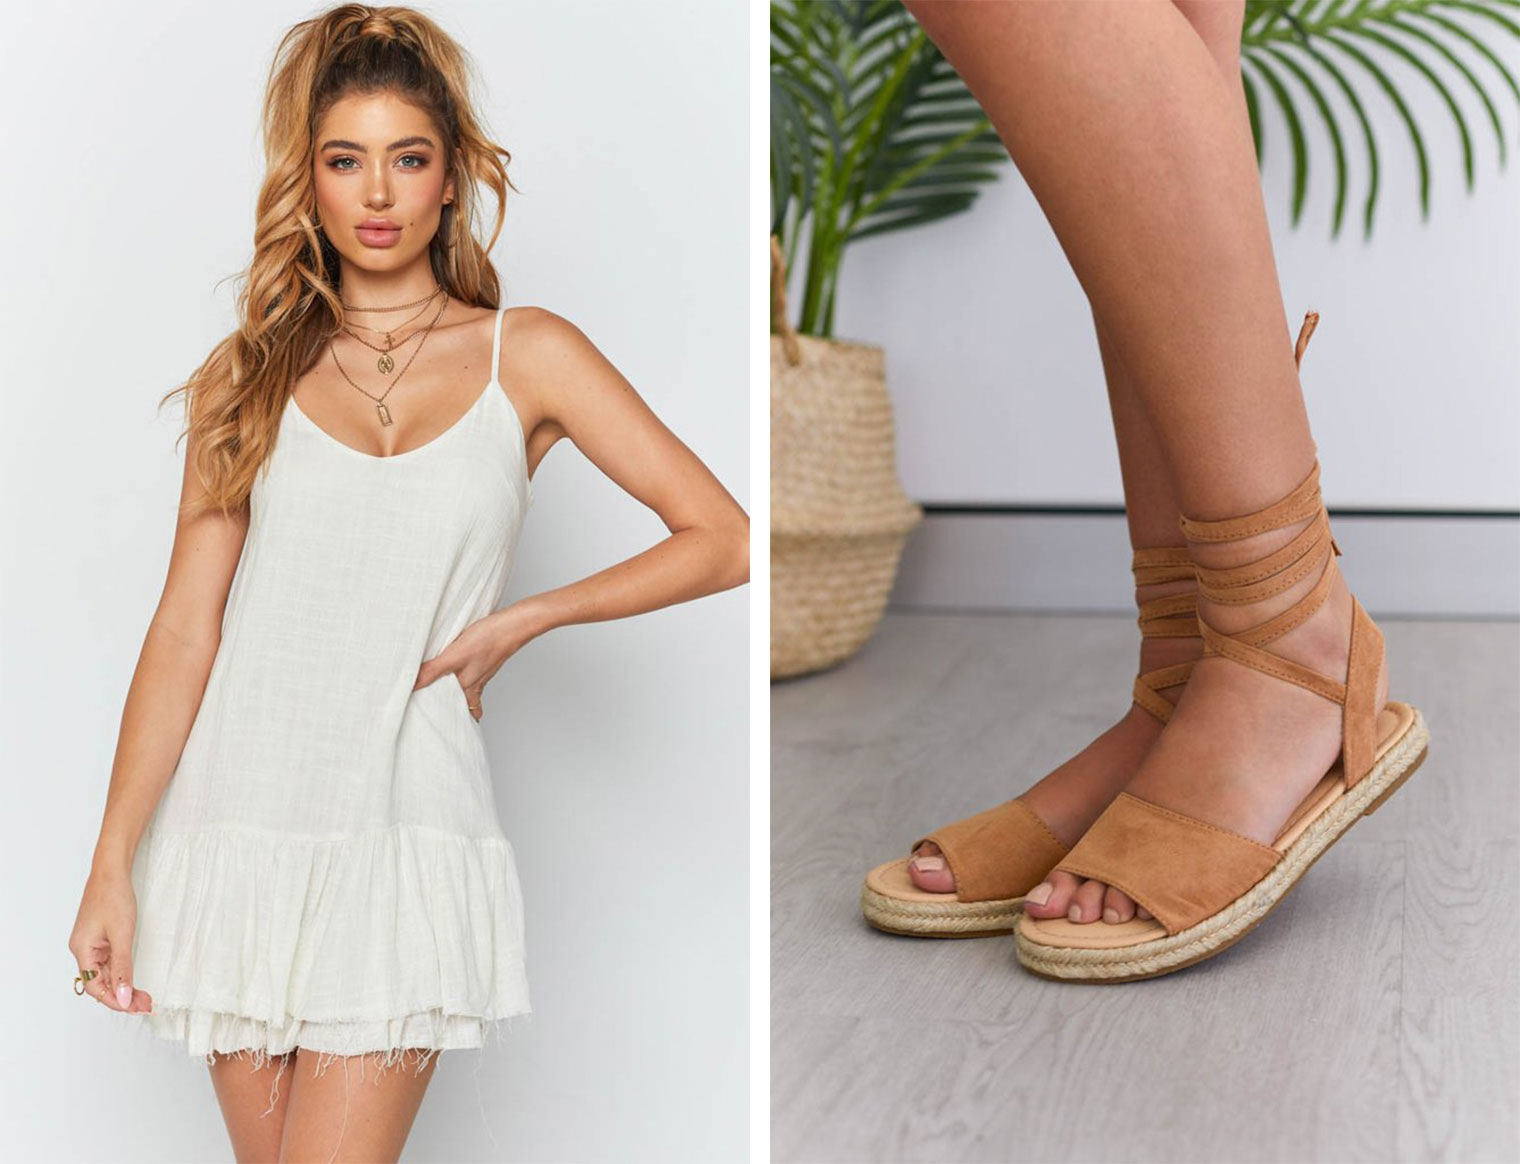 Cream linen dress and camel espadrilles